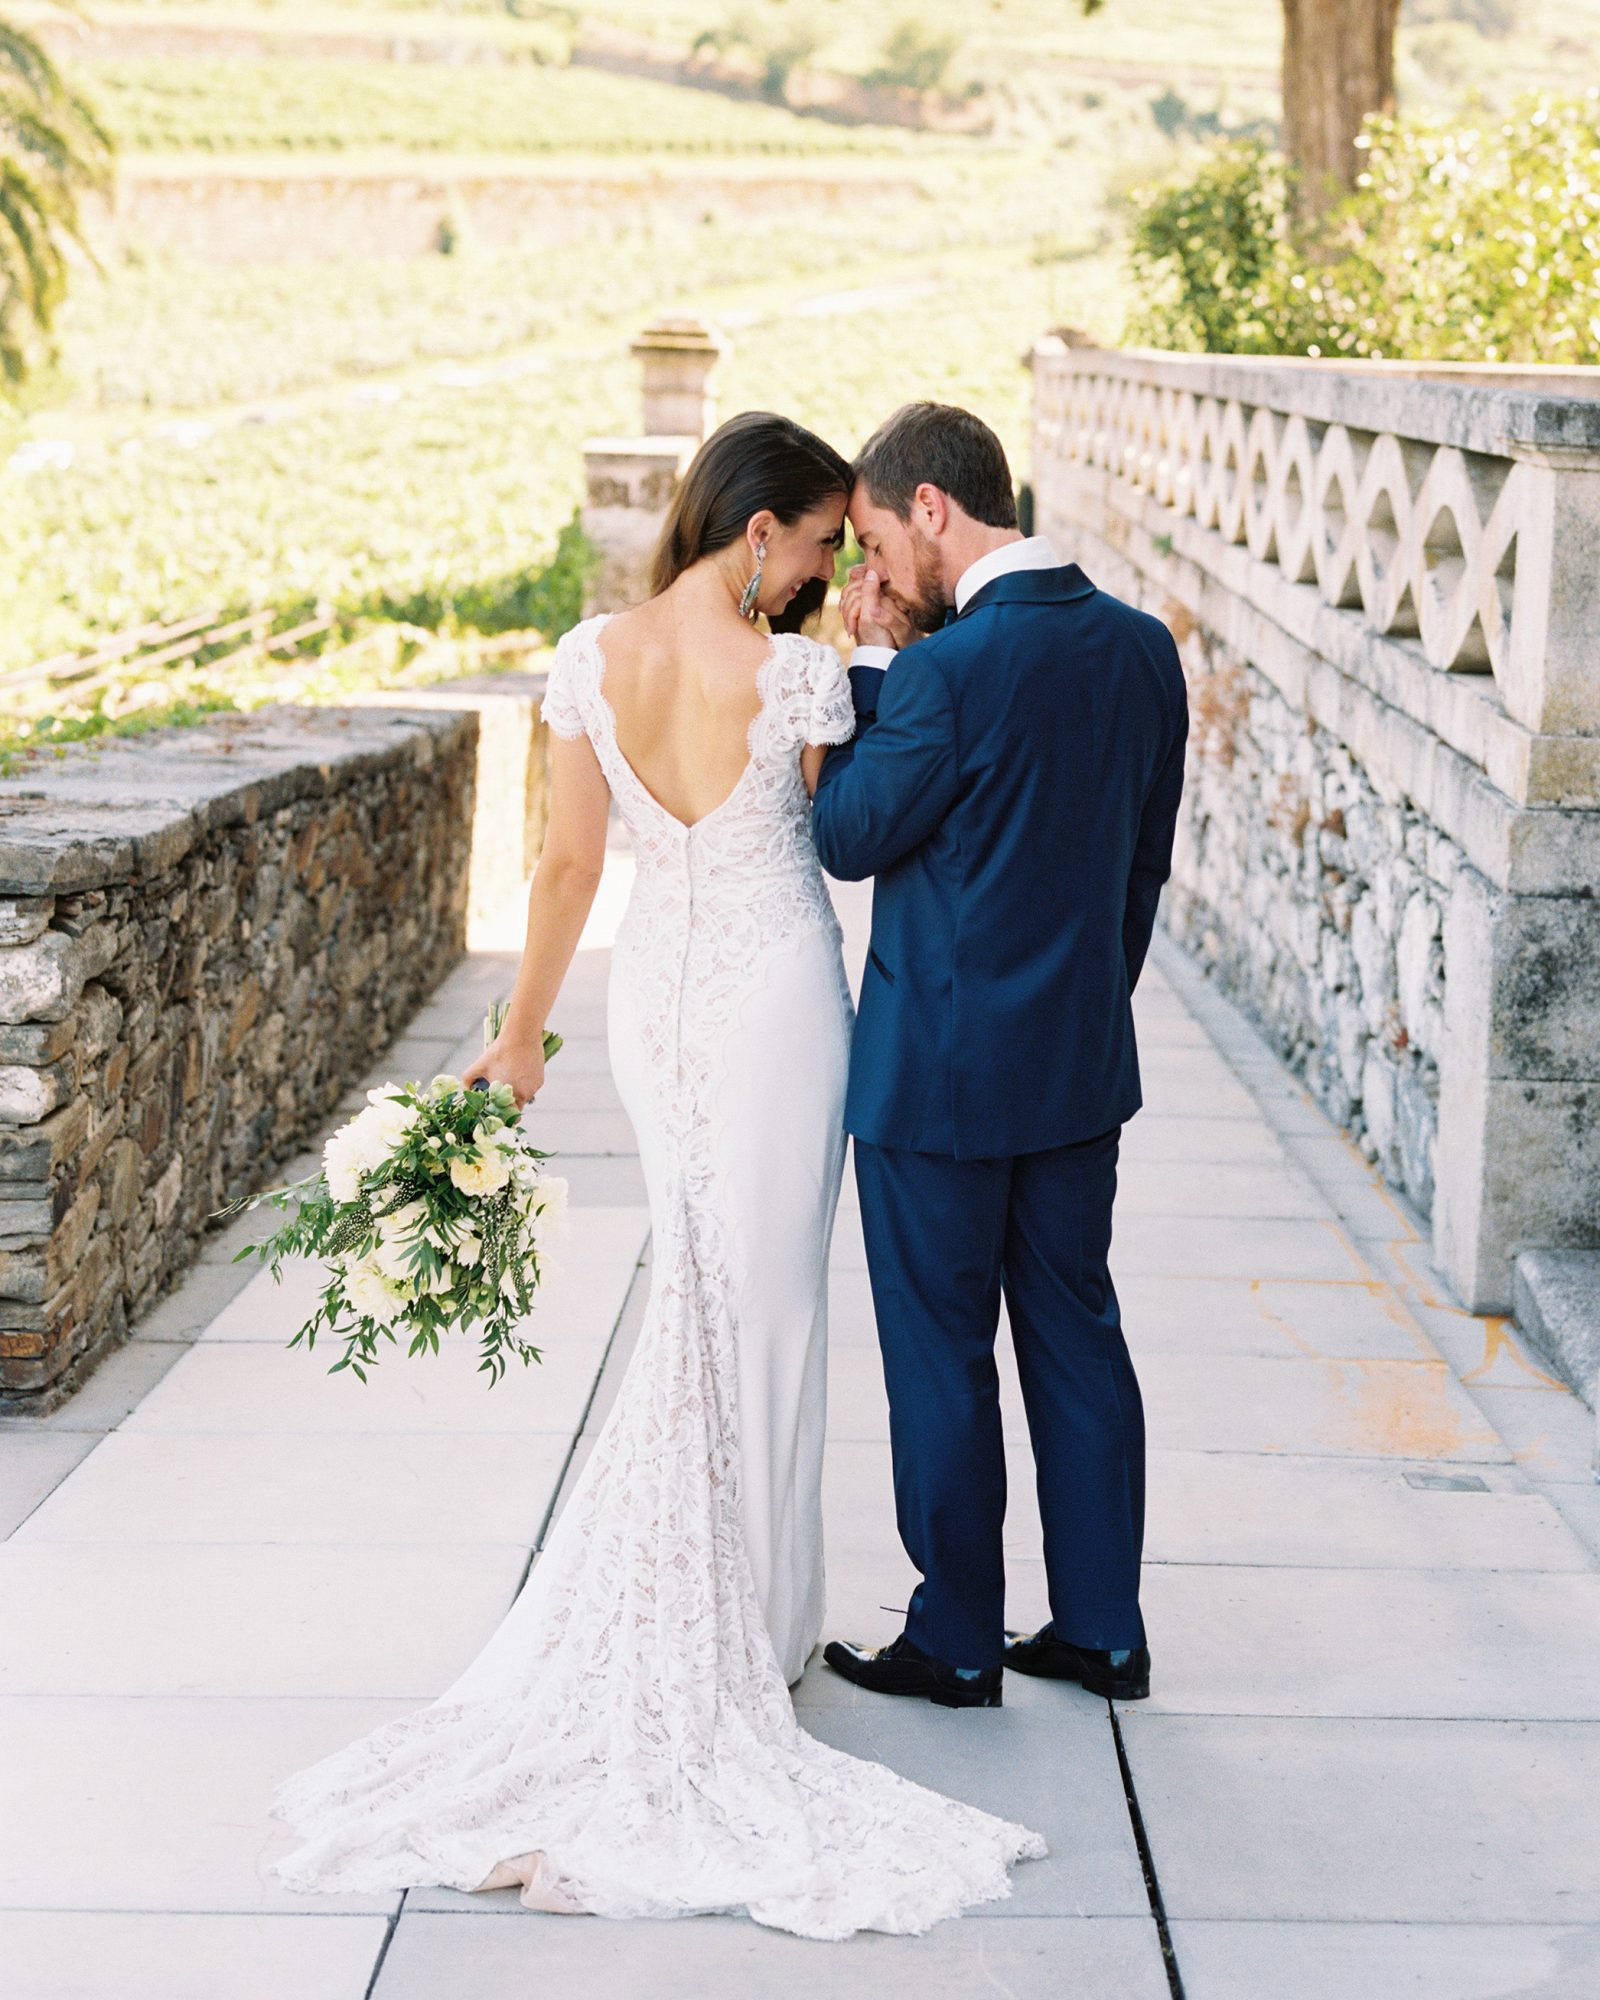 jeannette taylor wedding portugal couple kiss hand